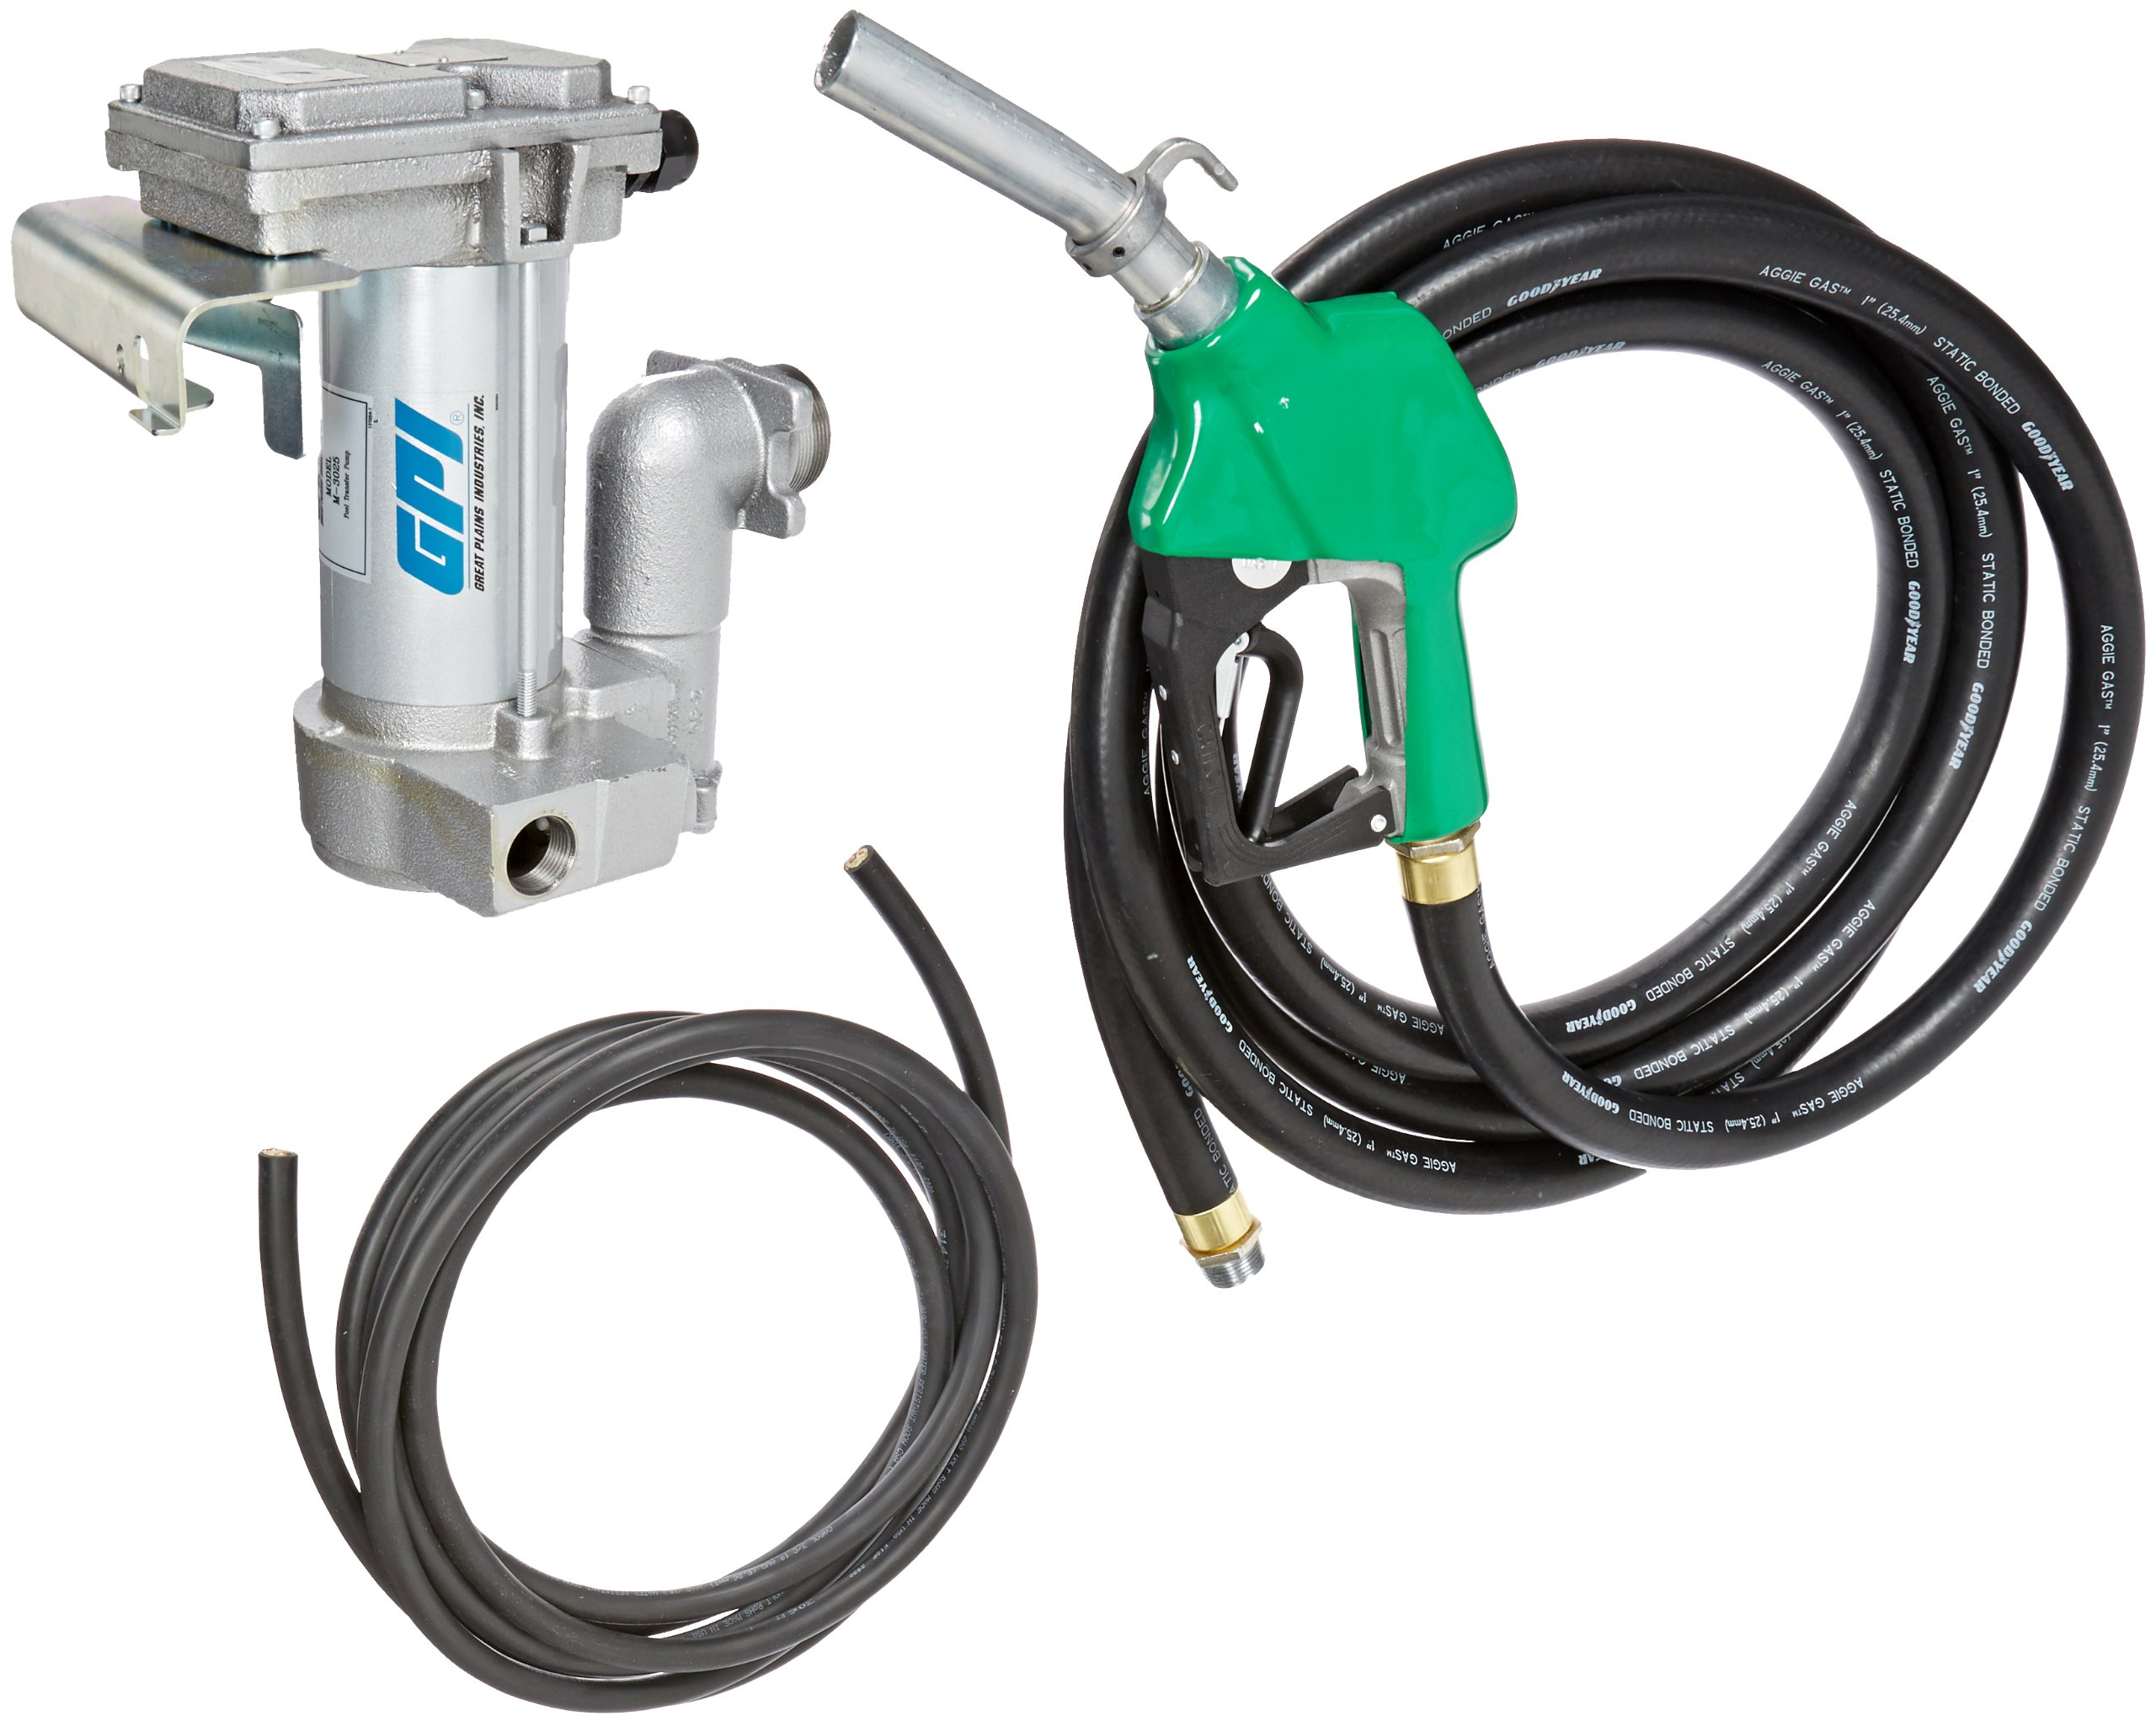 GPI 133265-04, M-3025CB-AD High Flow Cast Iron Fuel Transfer Pump, 12-VDC, 25 GPM, 1-Inch NPT X 18-Foot Fuel Hose, Automatic Diesel Nozzle, 18-Foot Power Cord, Weight Centering Base